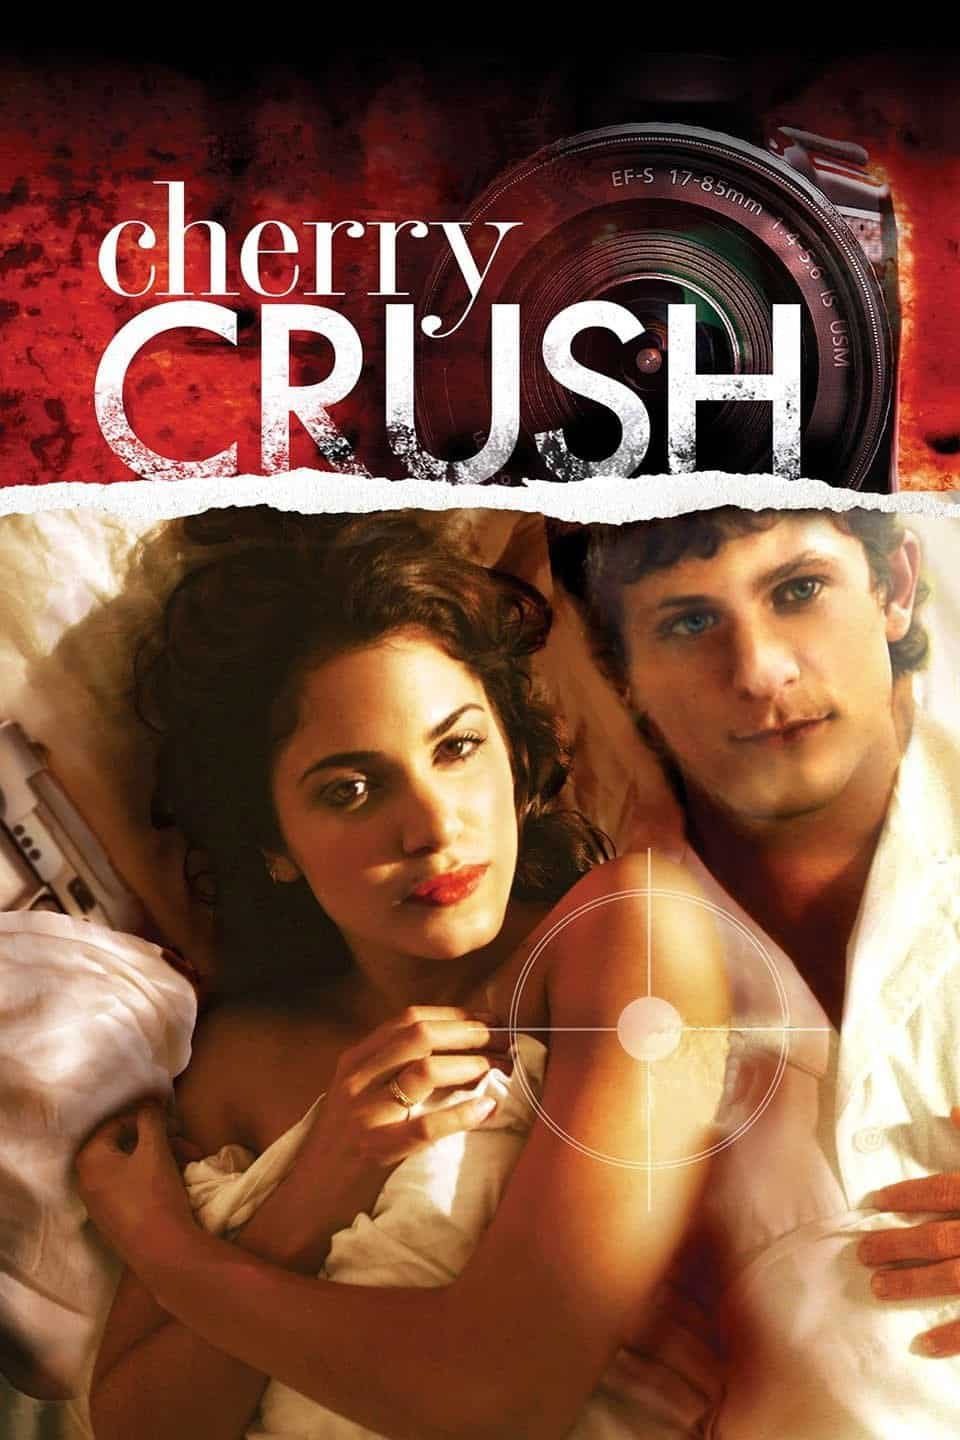 Cherry Crush, 2007